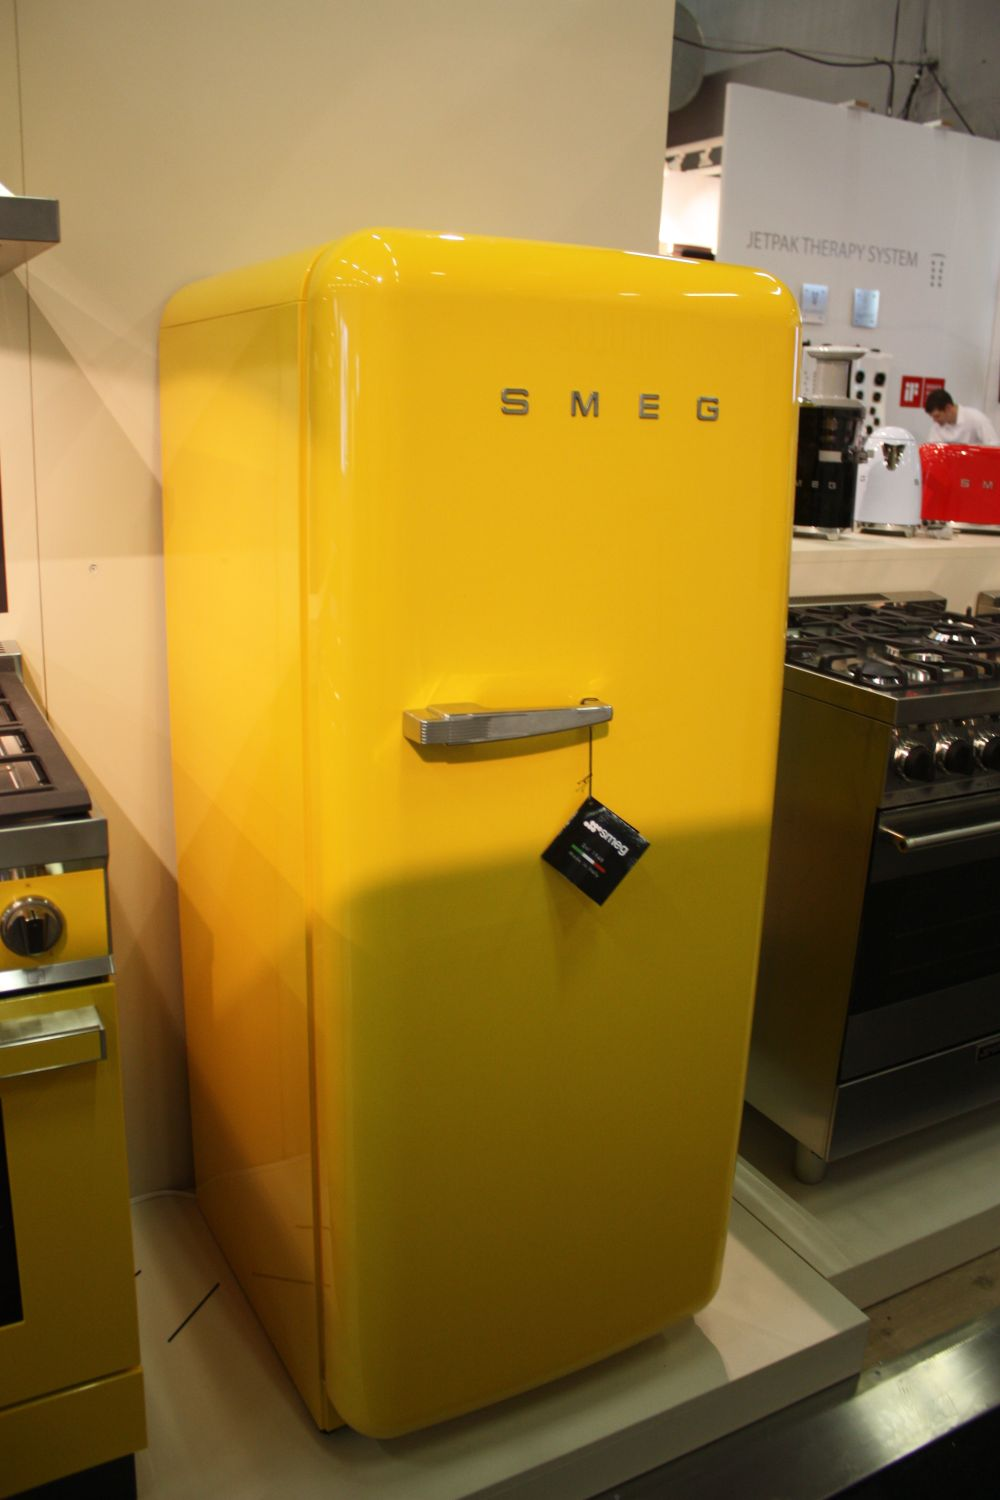 We love how cheerful and sunny this yellow fridge from Smeg looks. It brightens up the whole room